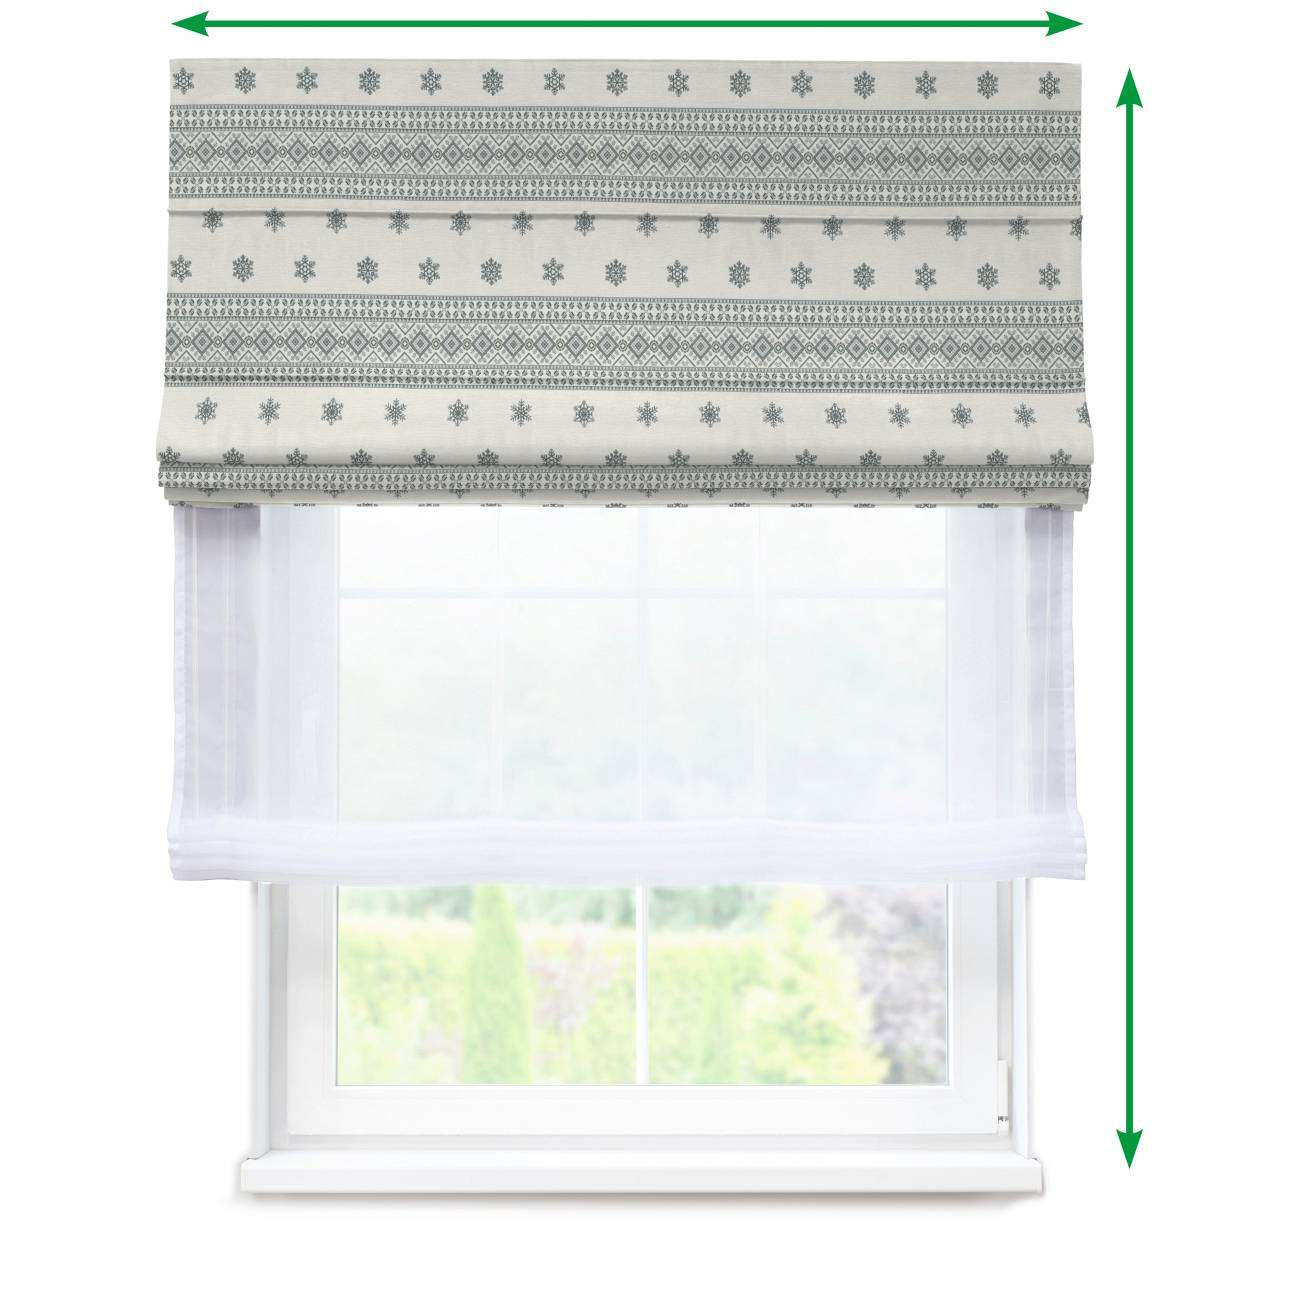 Voile and fabric roman blind (DUO II) in collection Christmas, fabric: 630-25